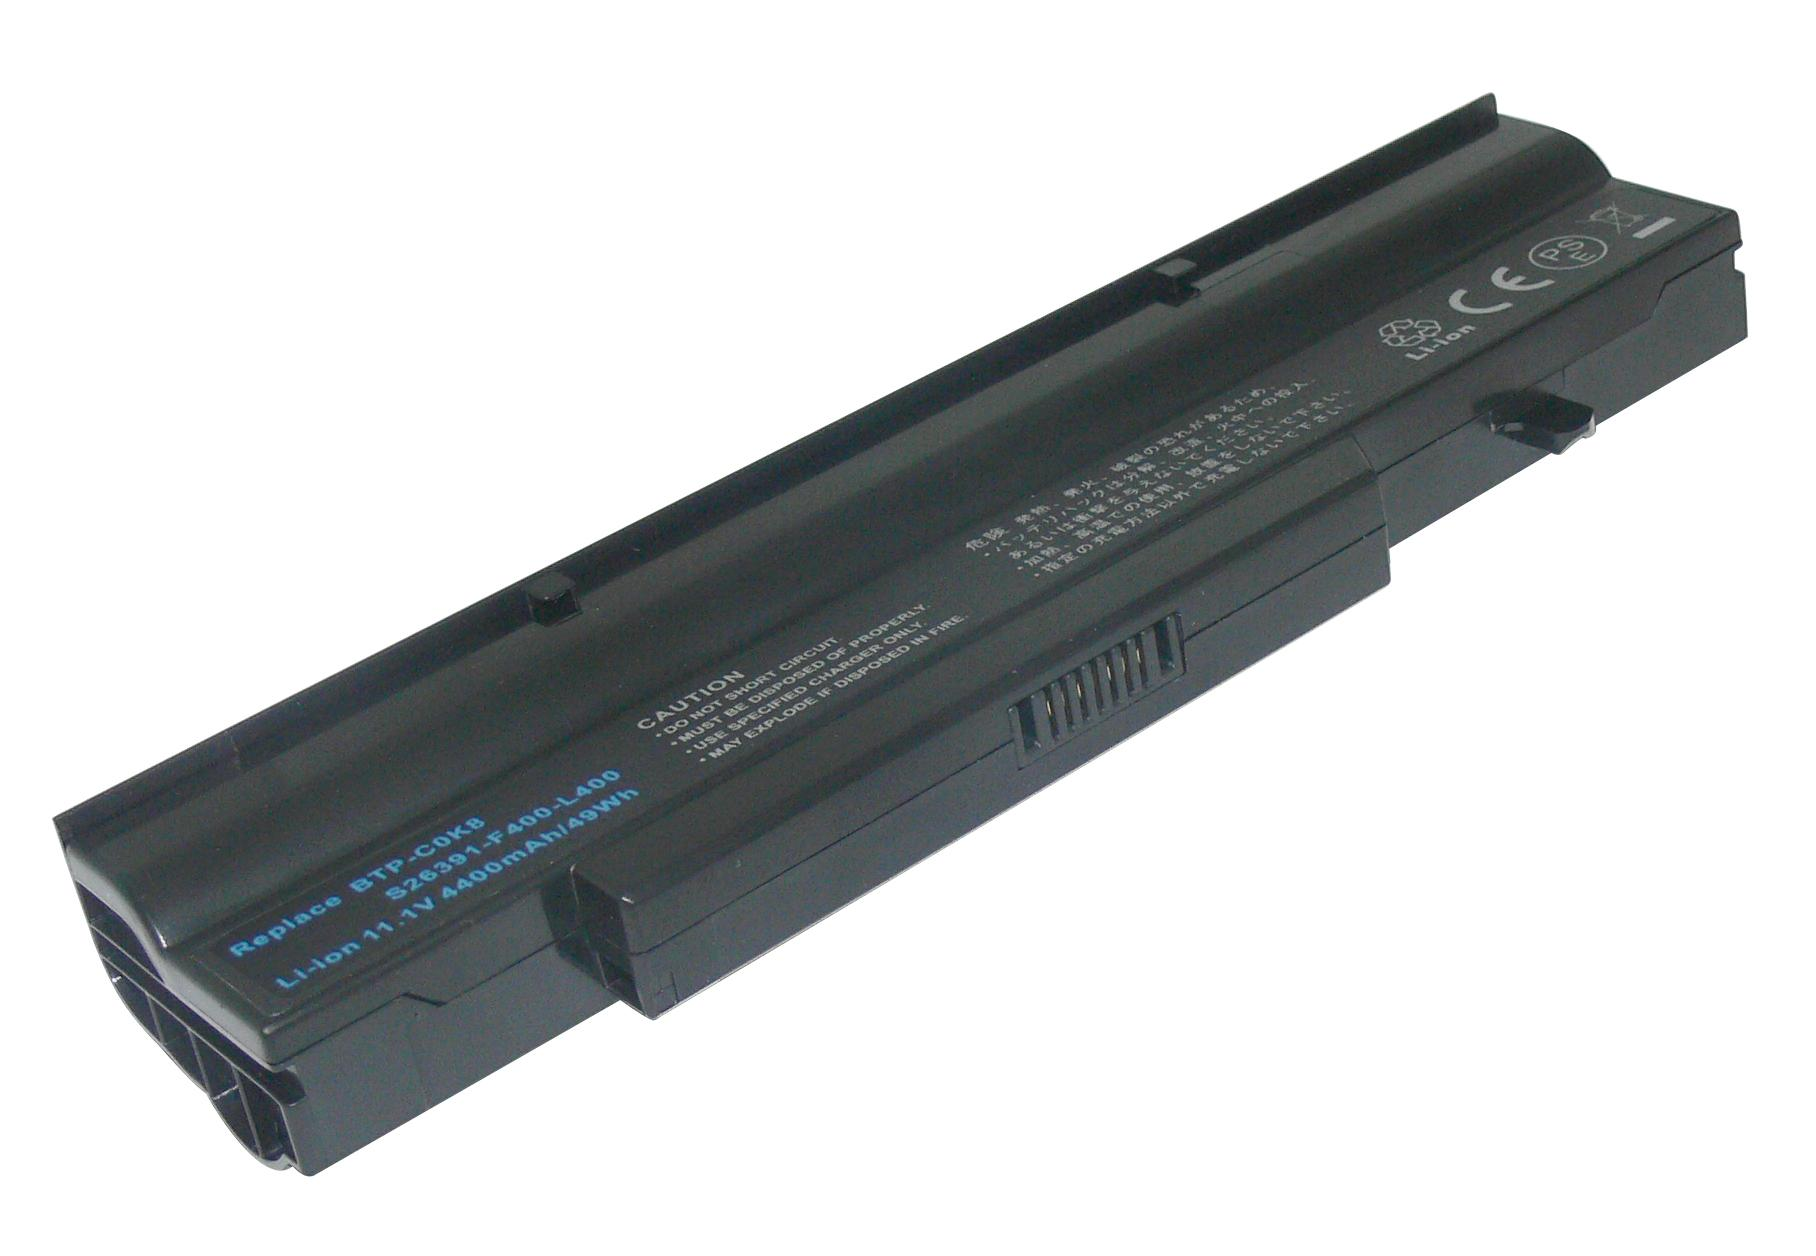 Replacement Fujitsu 60.4P311.041 Battery